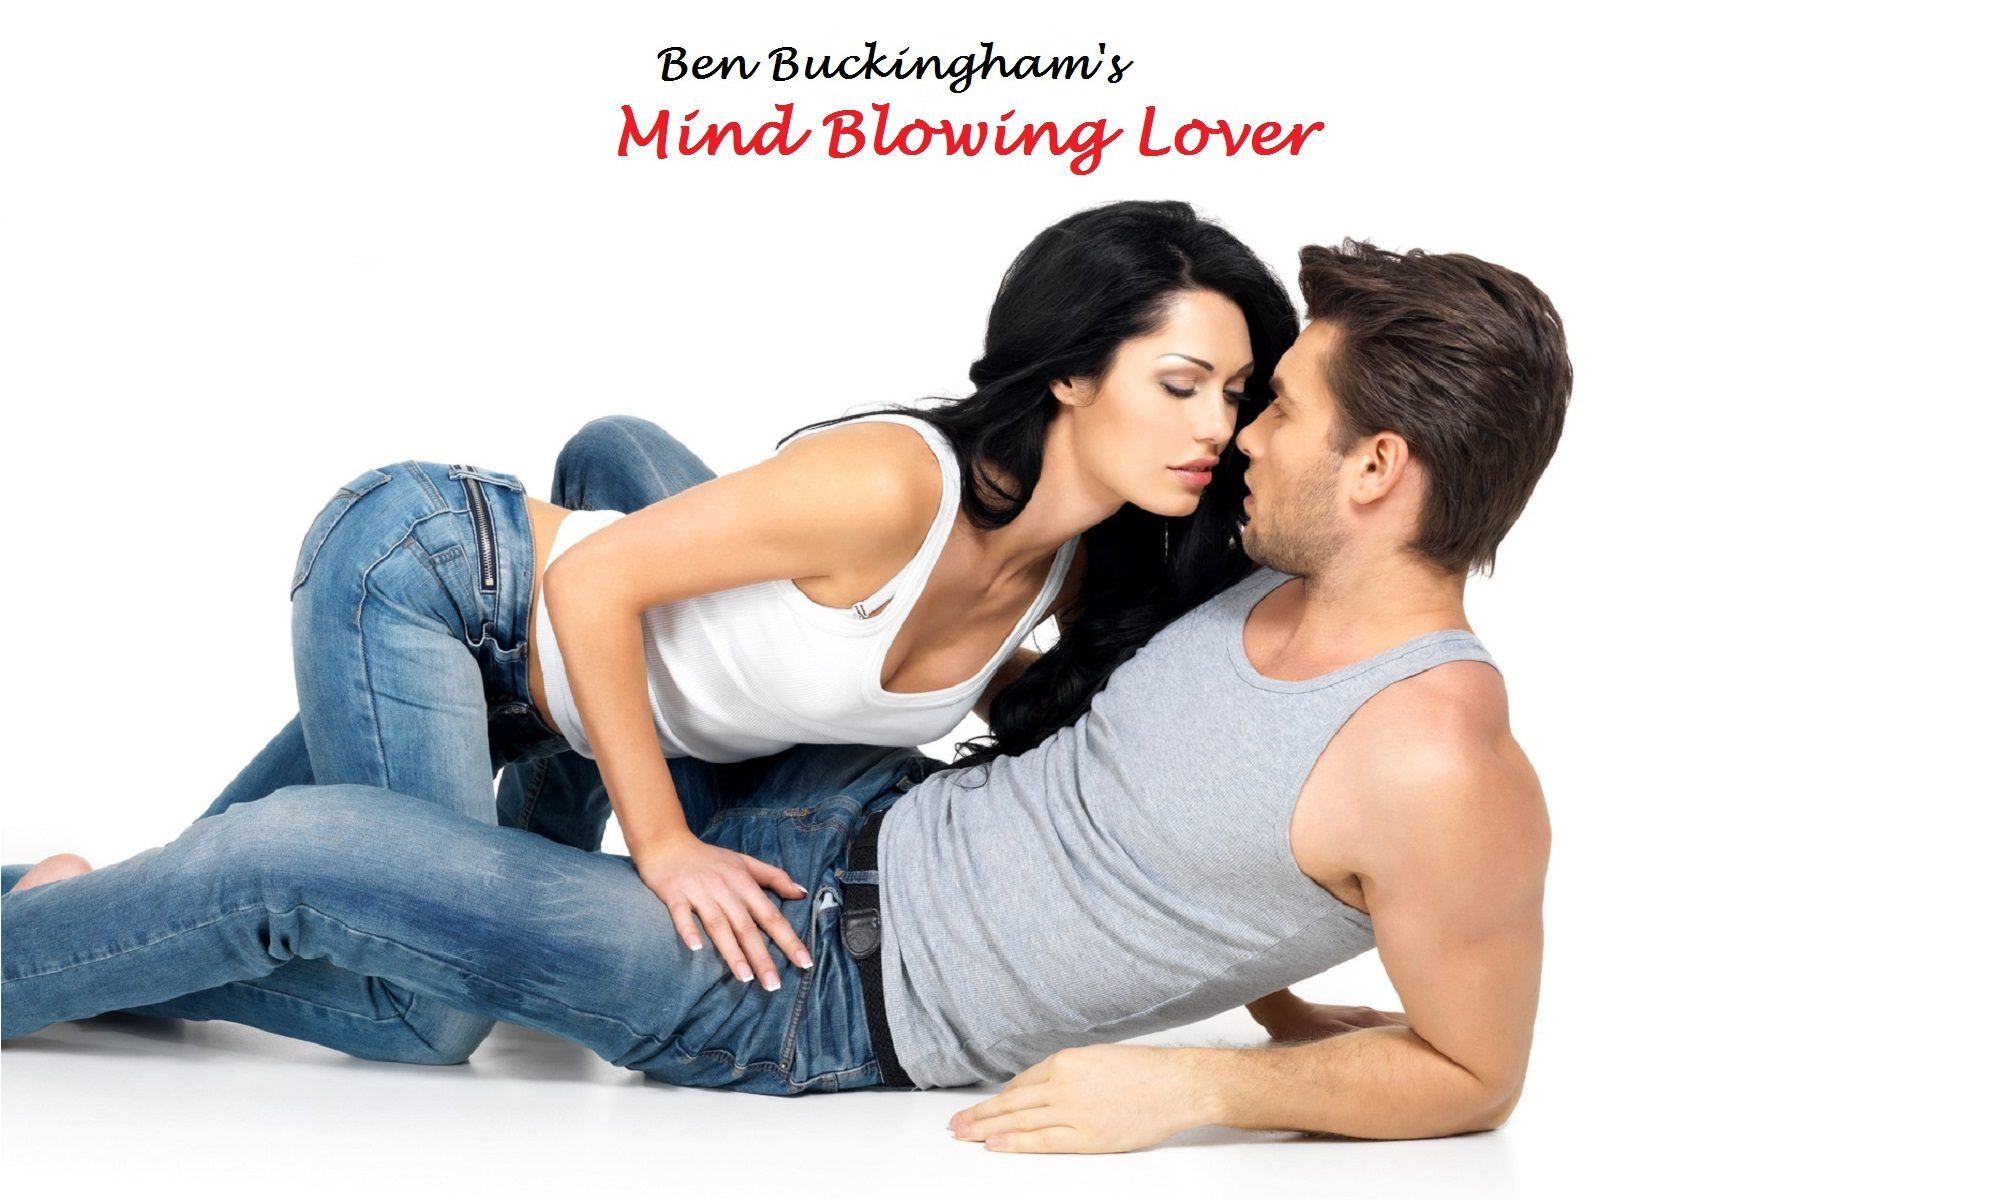 Ben Buckingham Sex Guide Videos & Sex Instruction Videos with Ben Buckingham (Mind Blowing Lover)